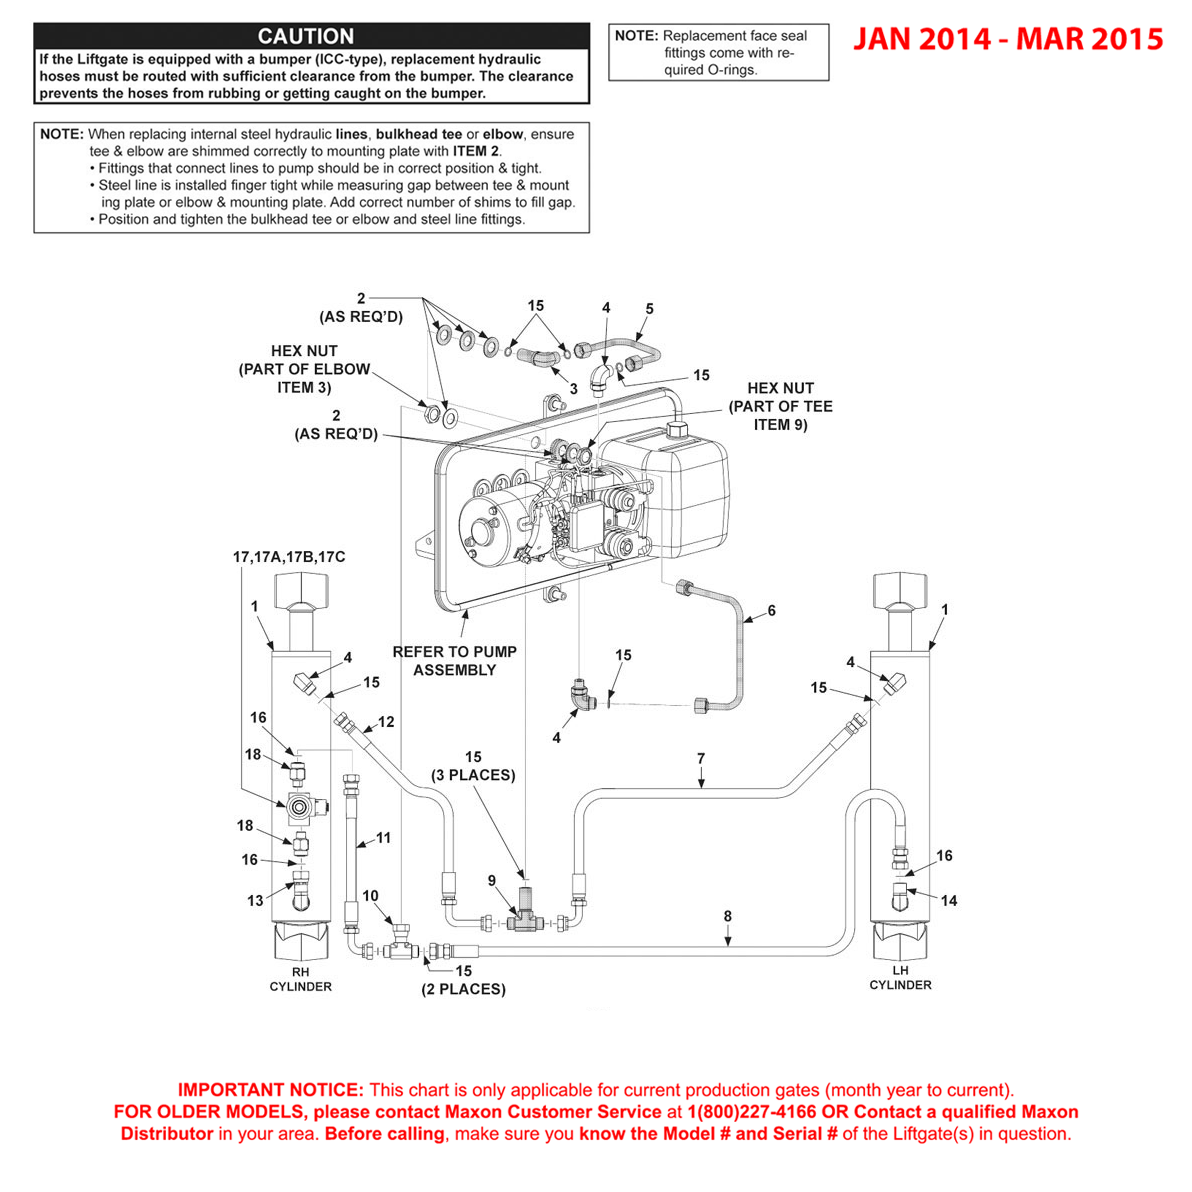 GPTWR (Jan 2014 - Mar 2015) Power Down Hydraulic Components Diagram